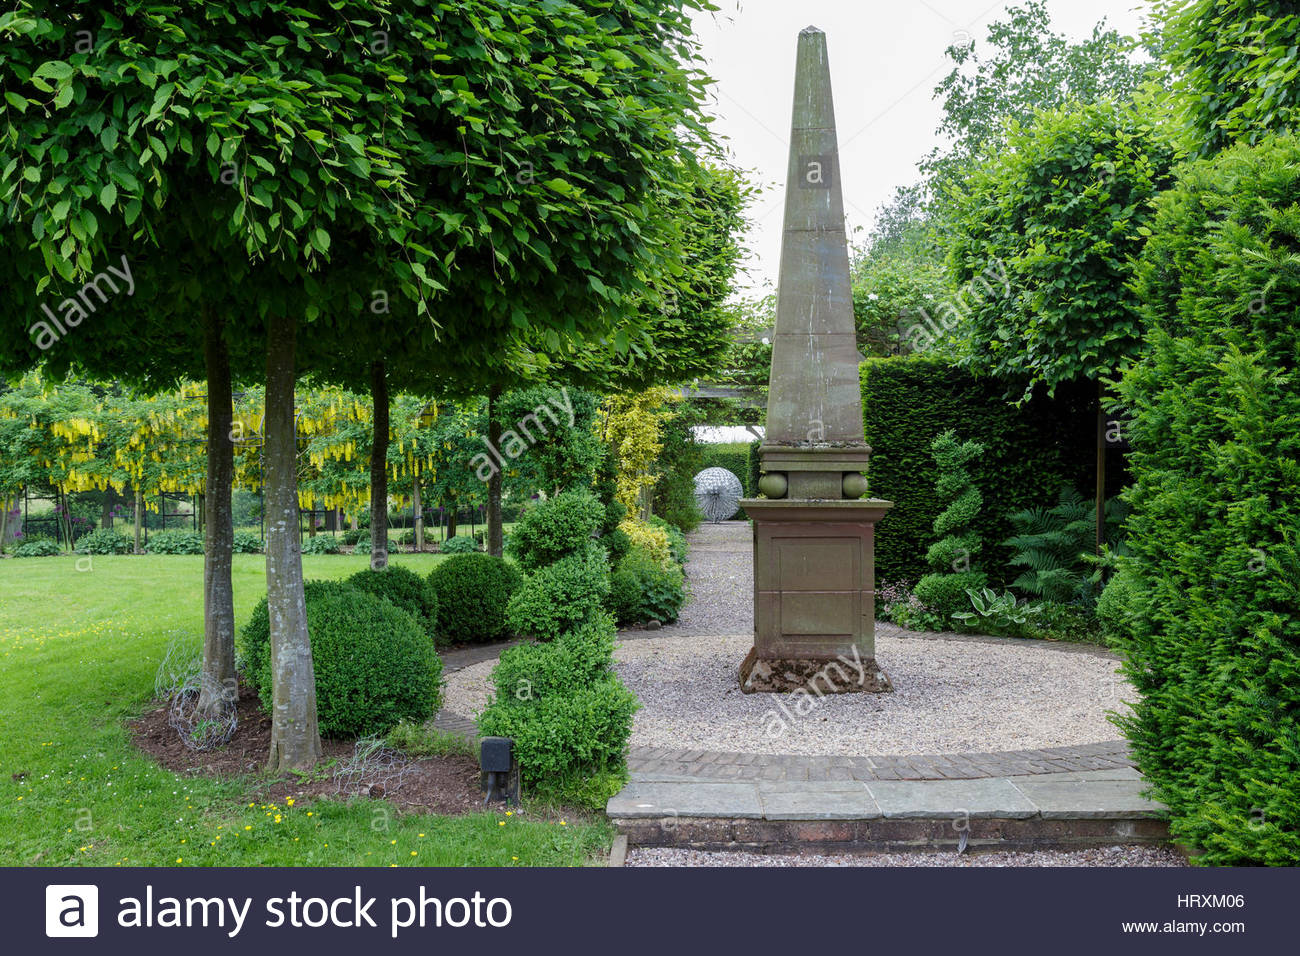 Merveilleux Mitton Manor, Staffordshire. Stone Obelisk Focal Point In Formal Garden    Stock Image